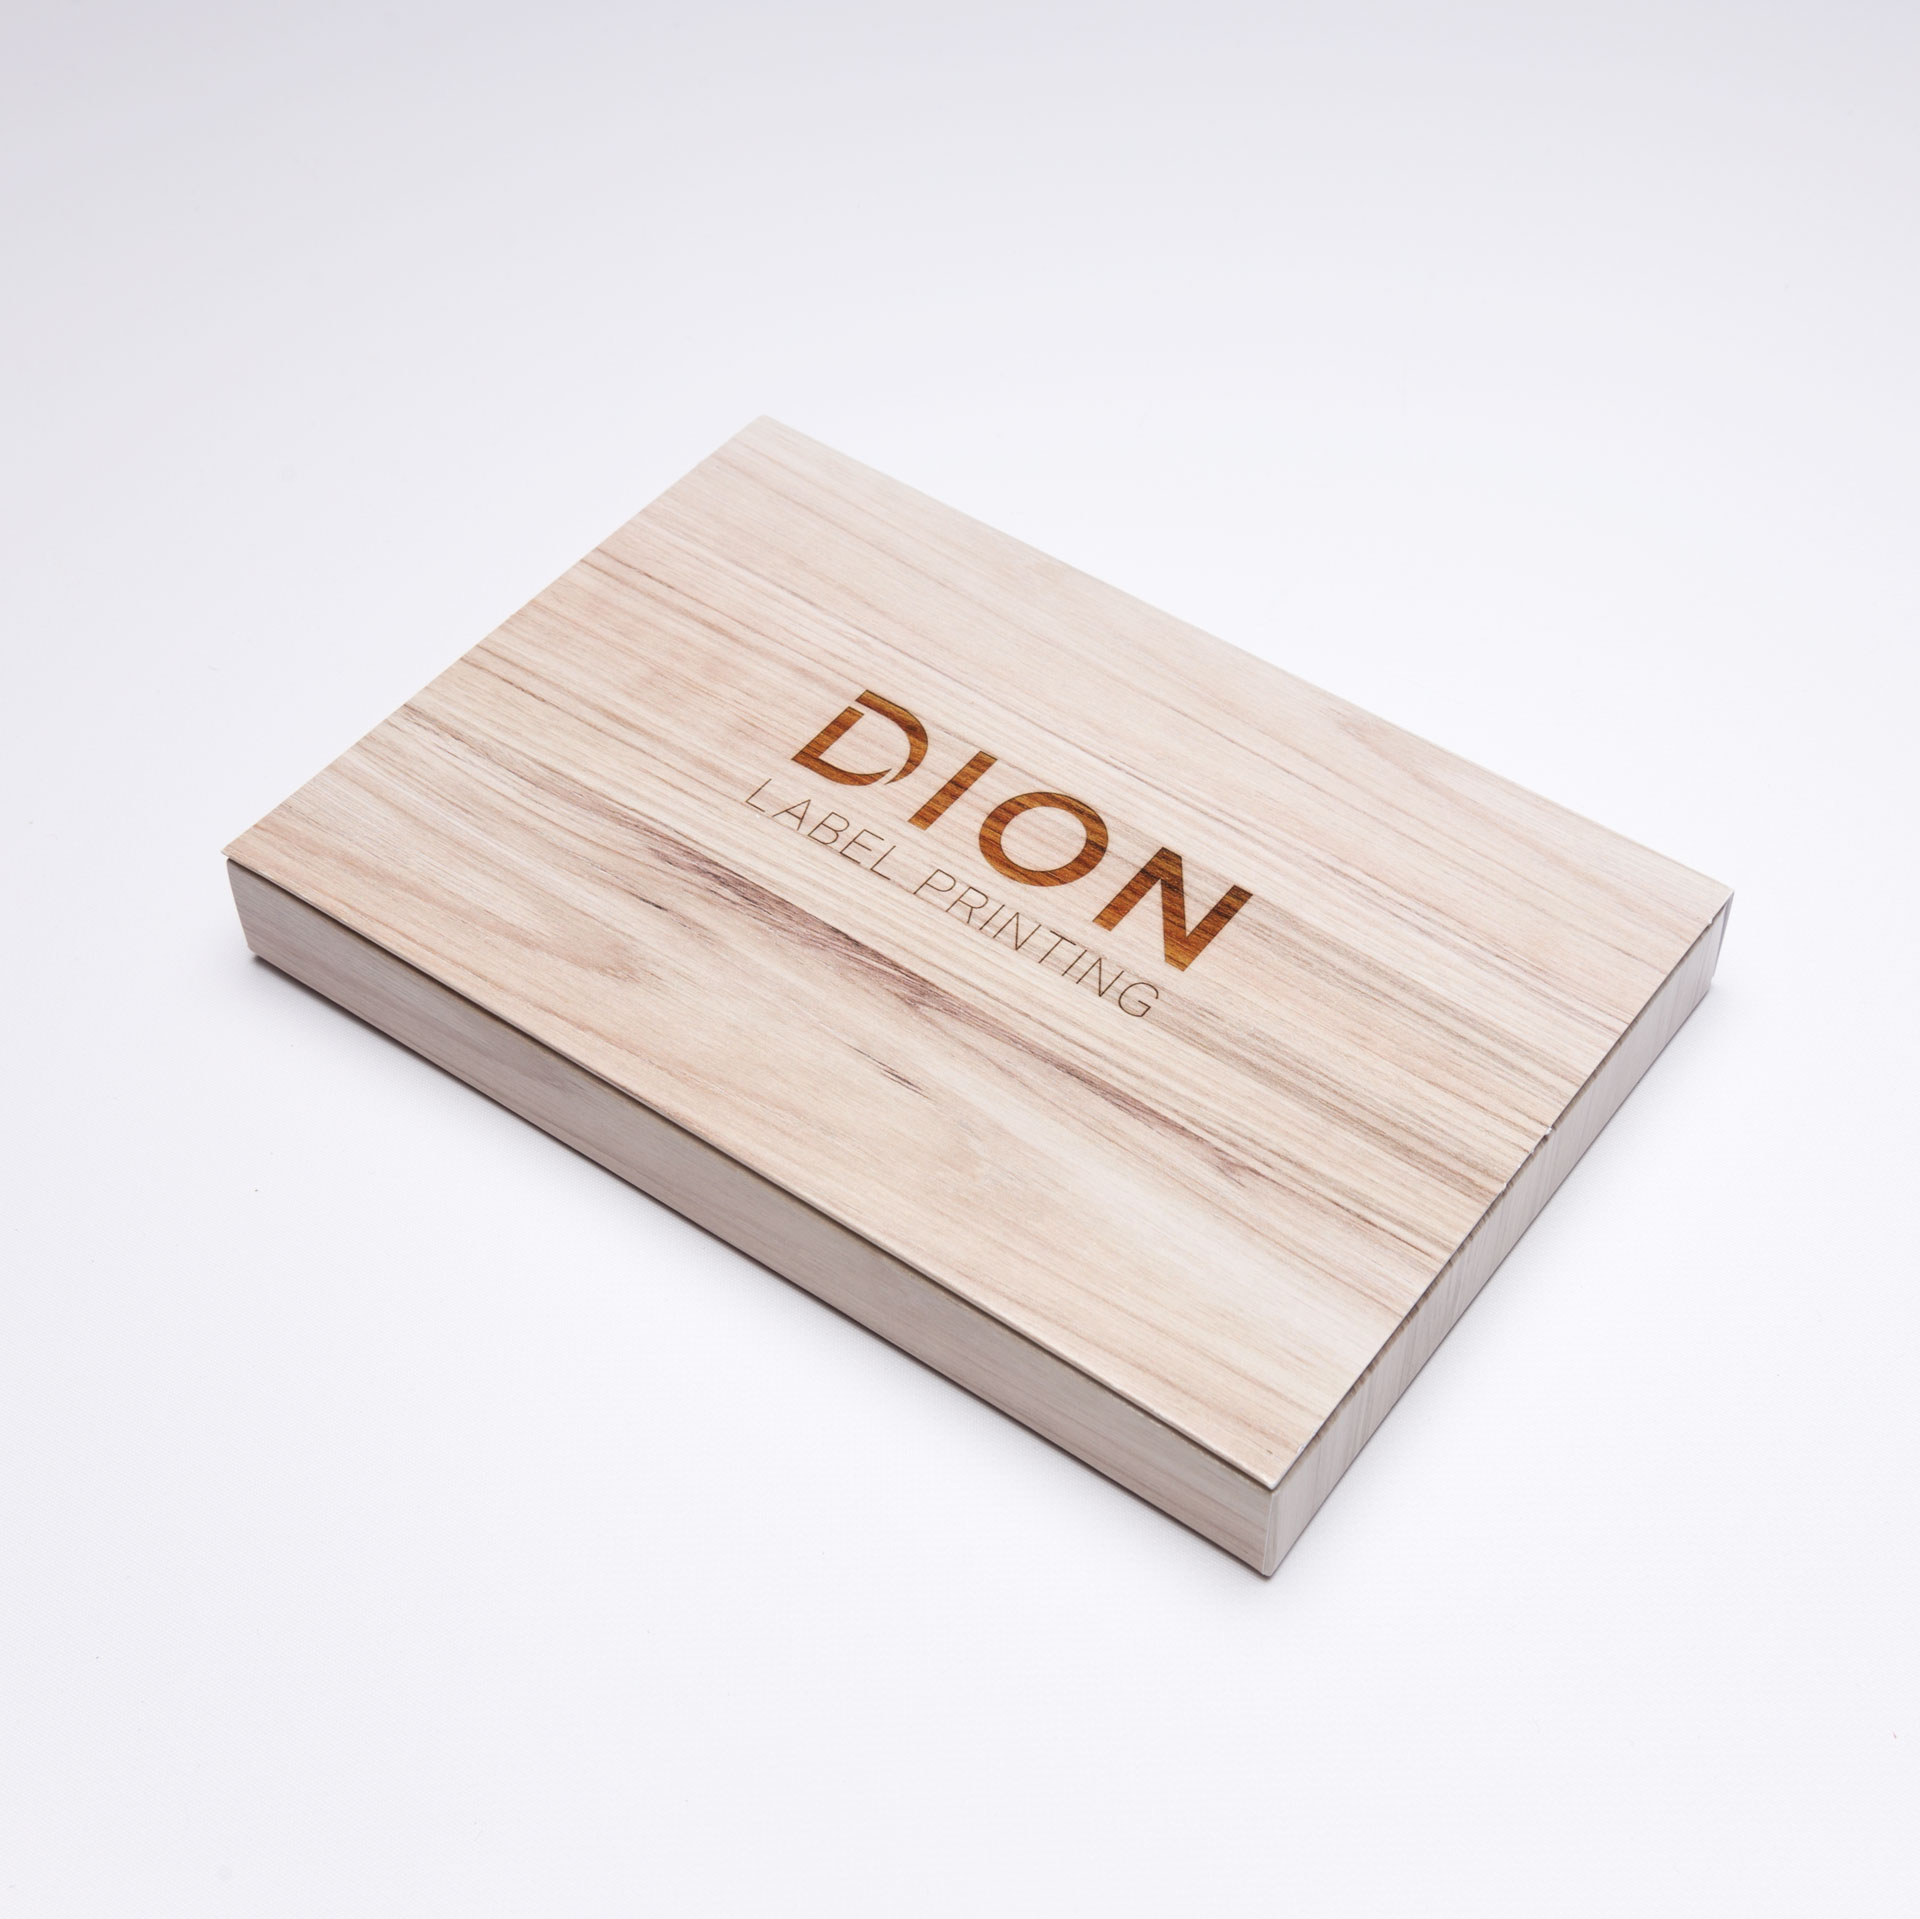 DION Label Printing Impresses Potential Customers Using the Large Well Box